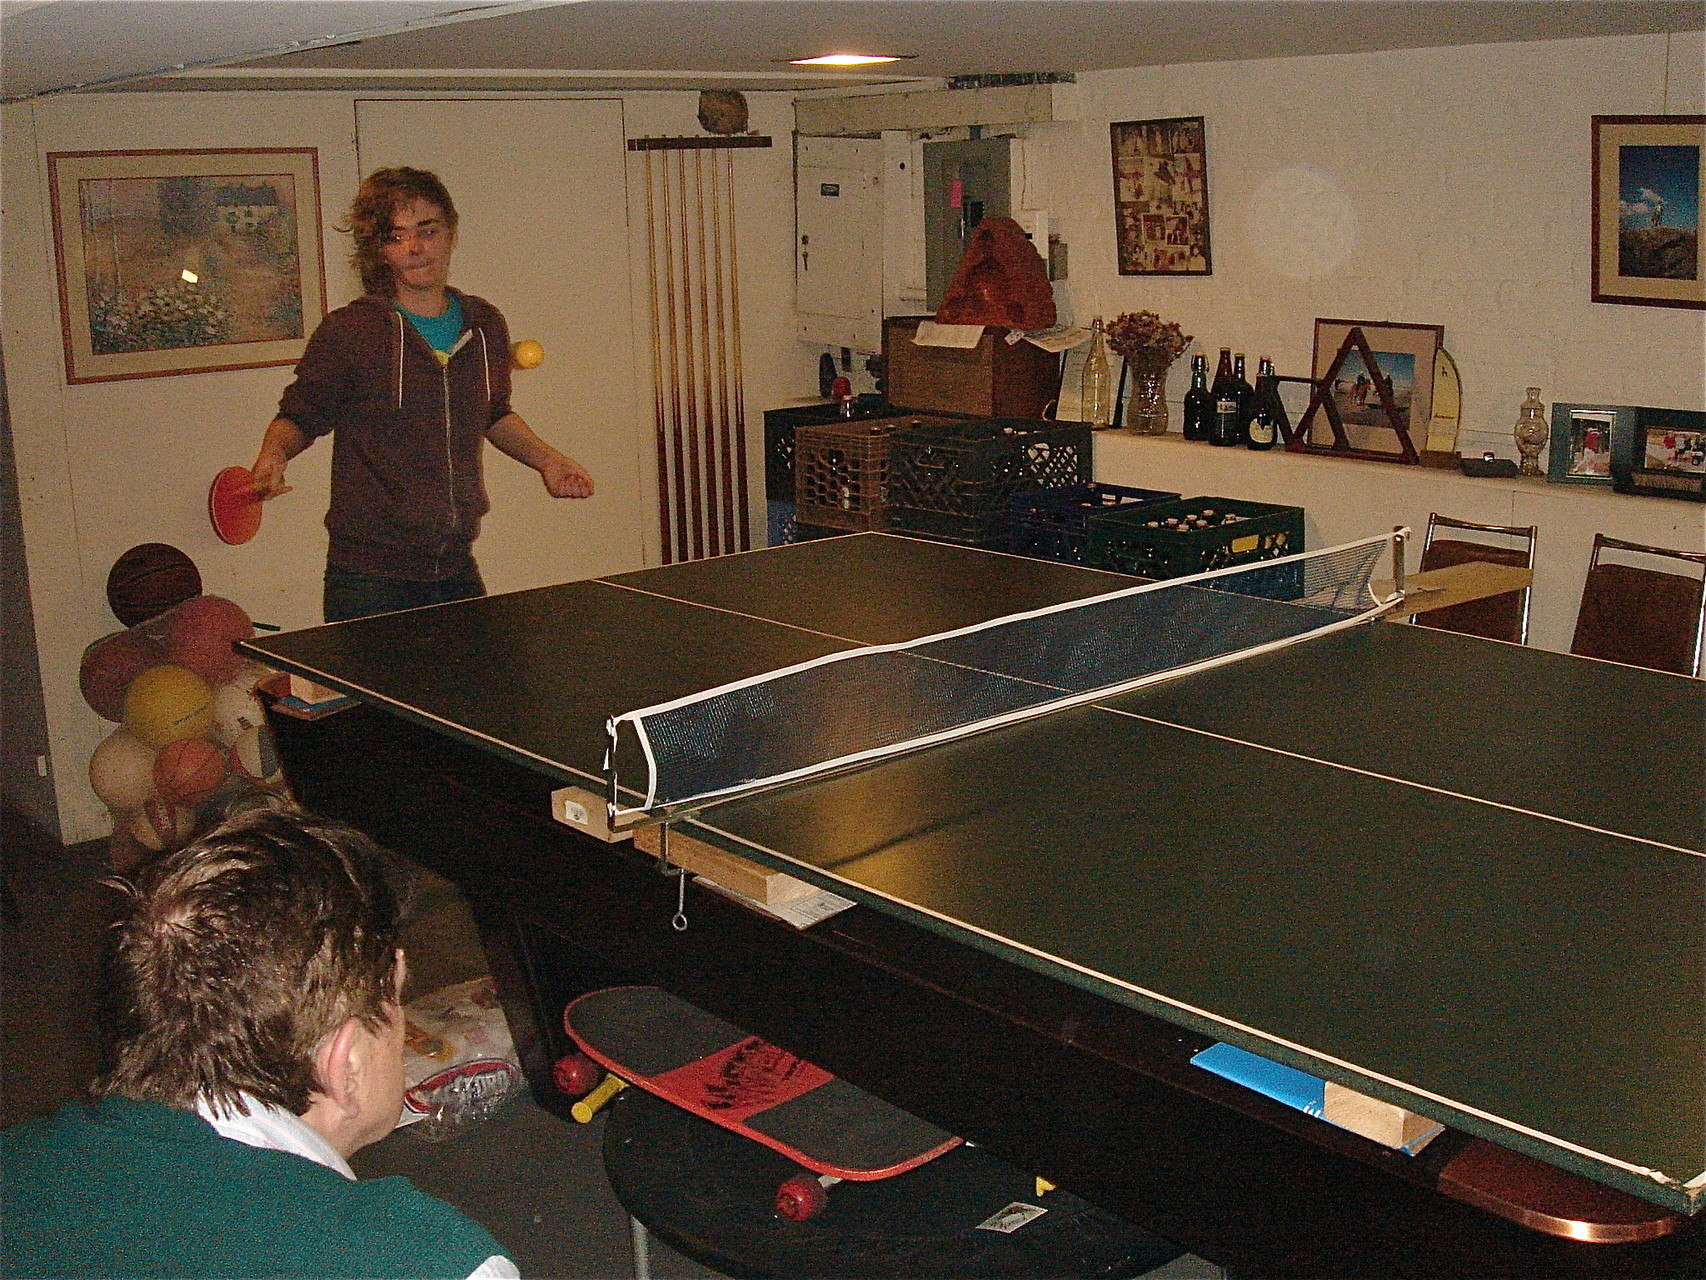 Kathleen Ackerman, Greg's cousin, shows her ping-pong moves...